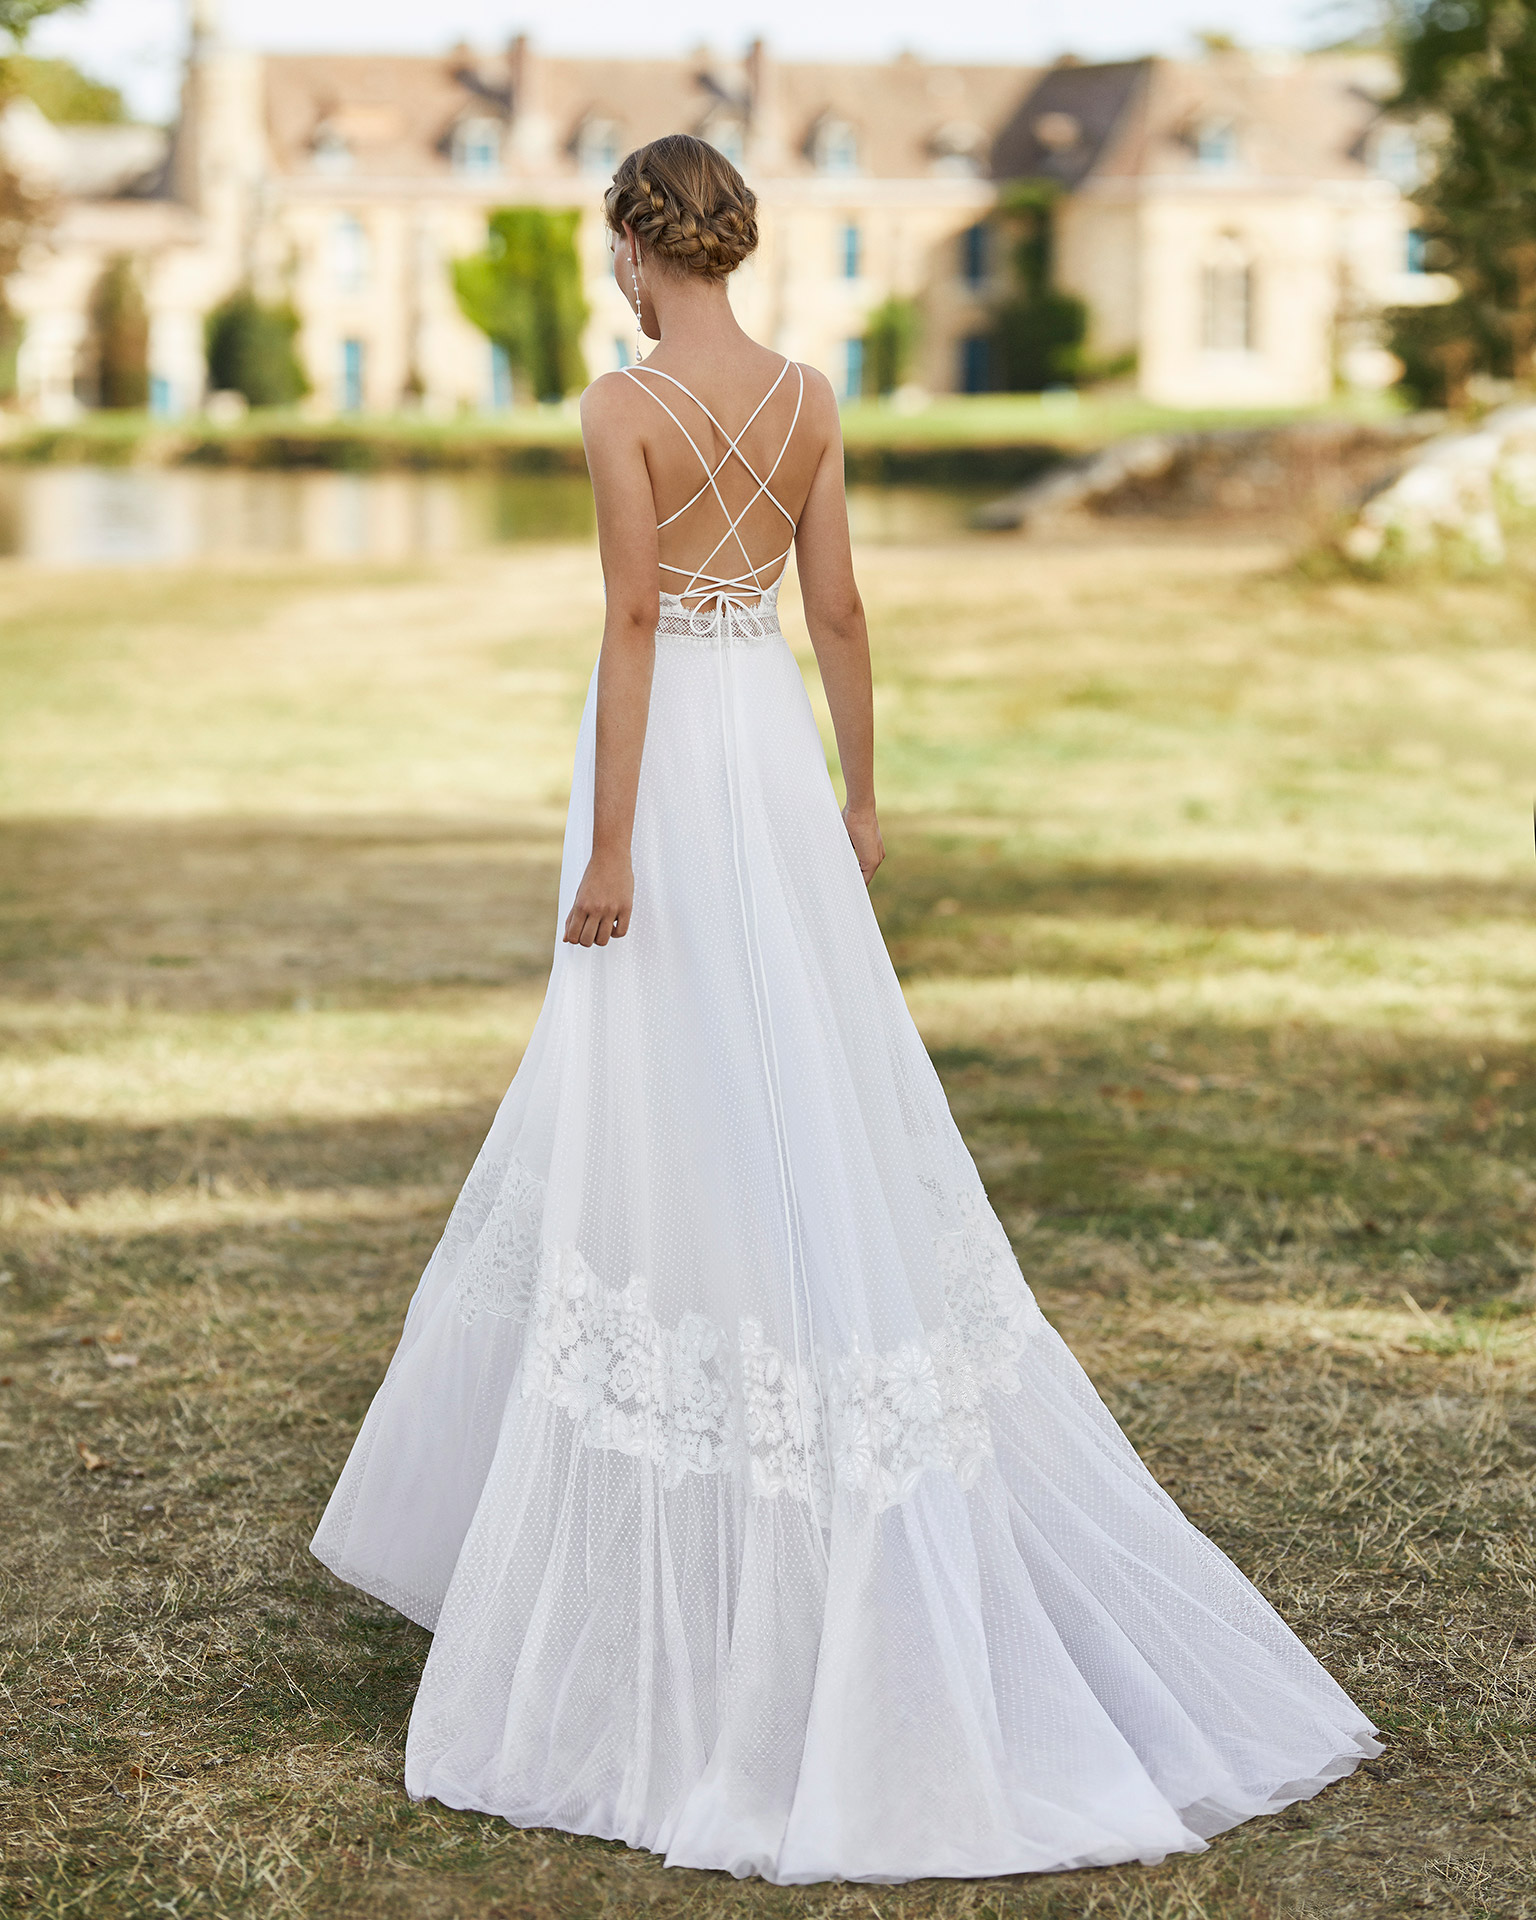 Wedding dress in dot tulle. Bateau neckline in lace, with shoulder straps and low back with shoulder straps. 2021 ALMANOVIA Collection.